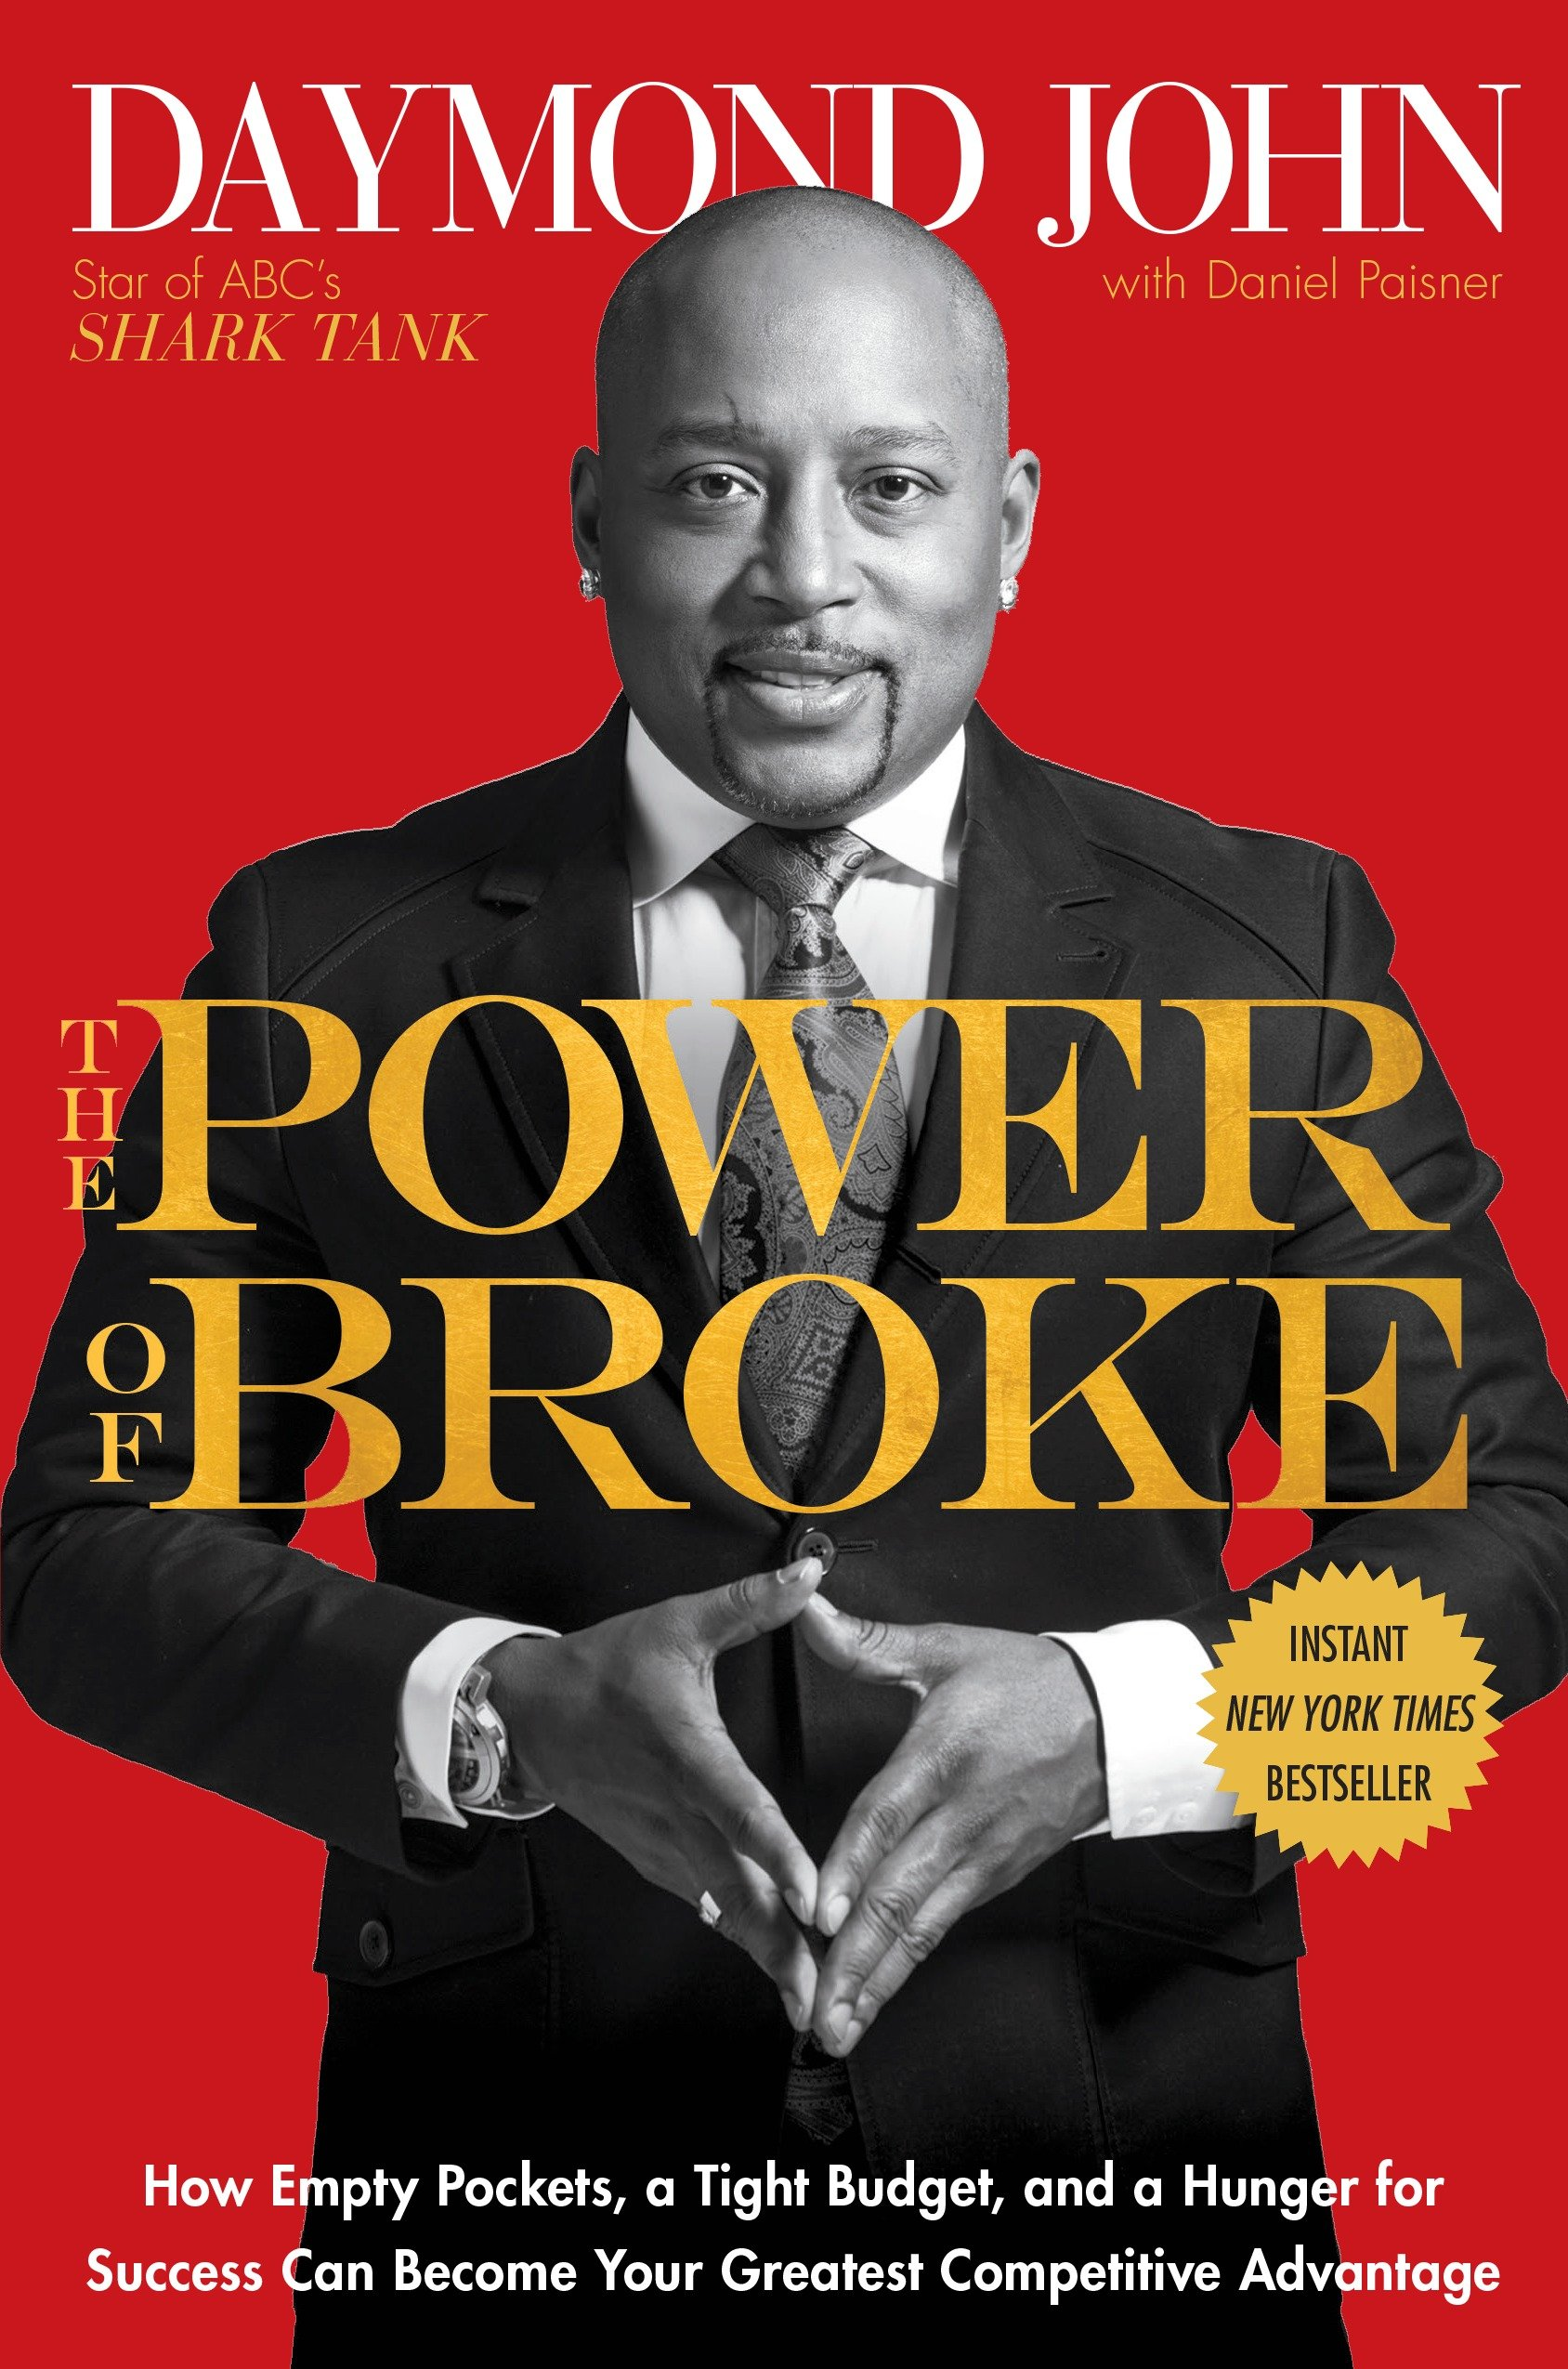 The power of broke how empty pockets, a tight budget, and a hunger for success can become your greatest competitive advantage cover image